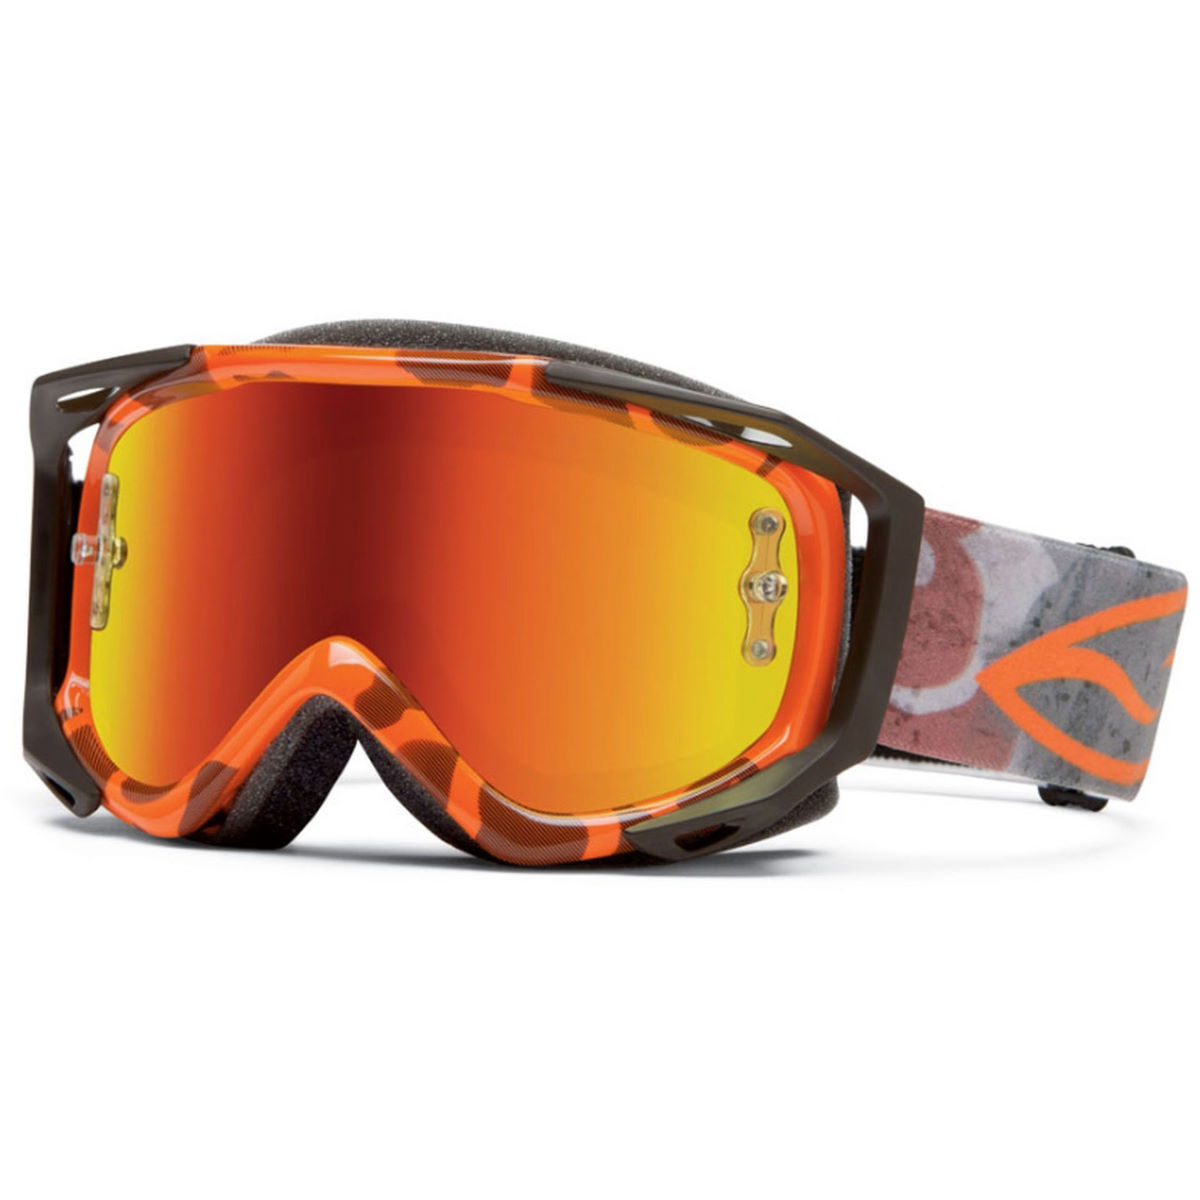 Masque Smith Fuel V.2 SW-X M - Taille unique Orange Duck Camo - R